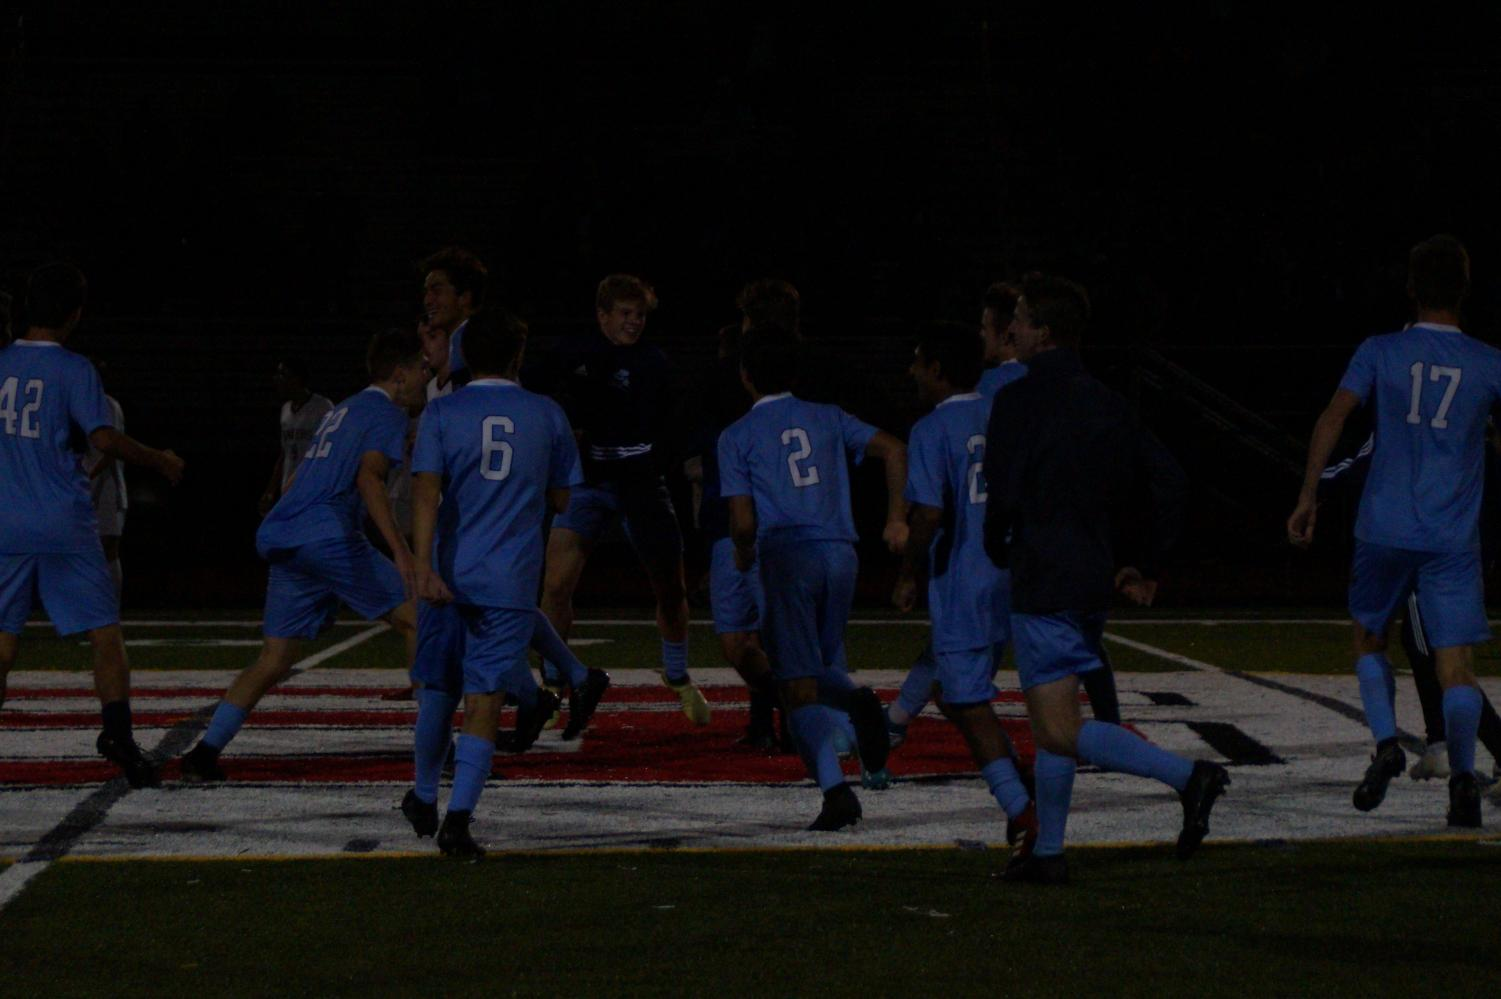 The Knights celebrate after their win that sent them into the District Final